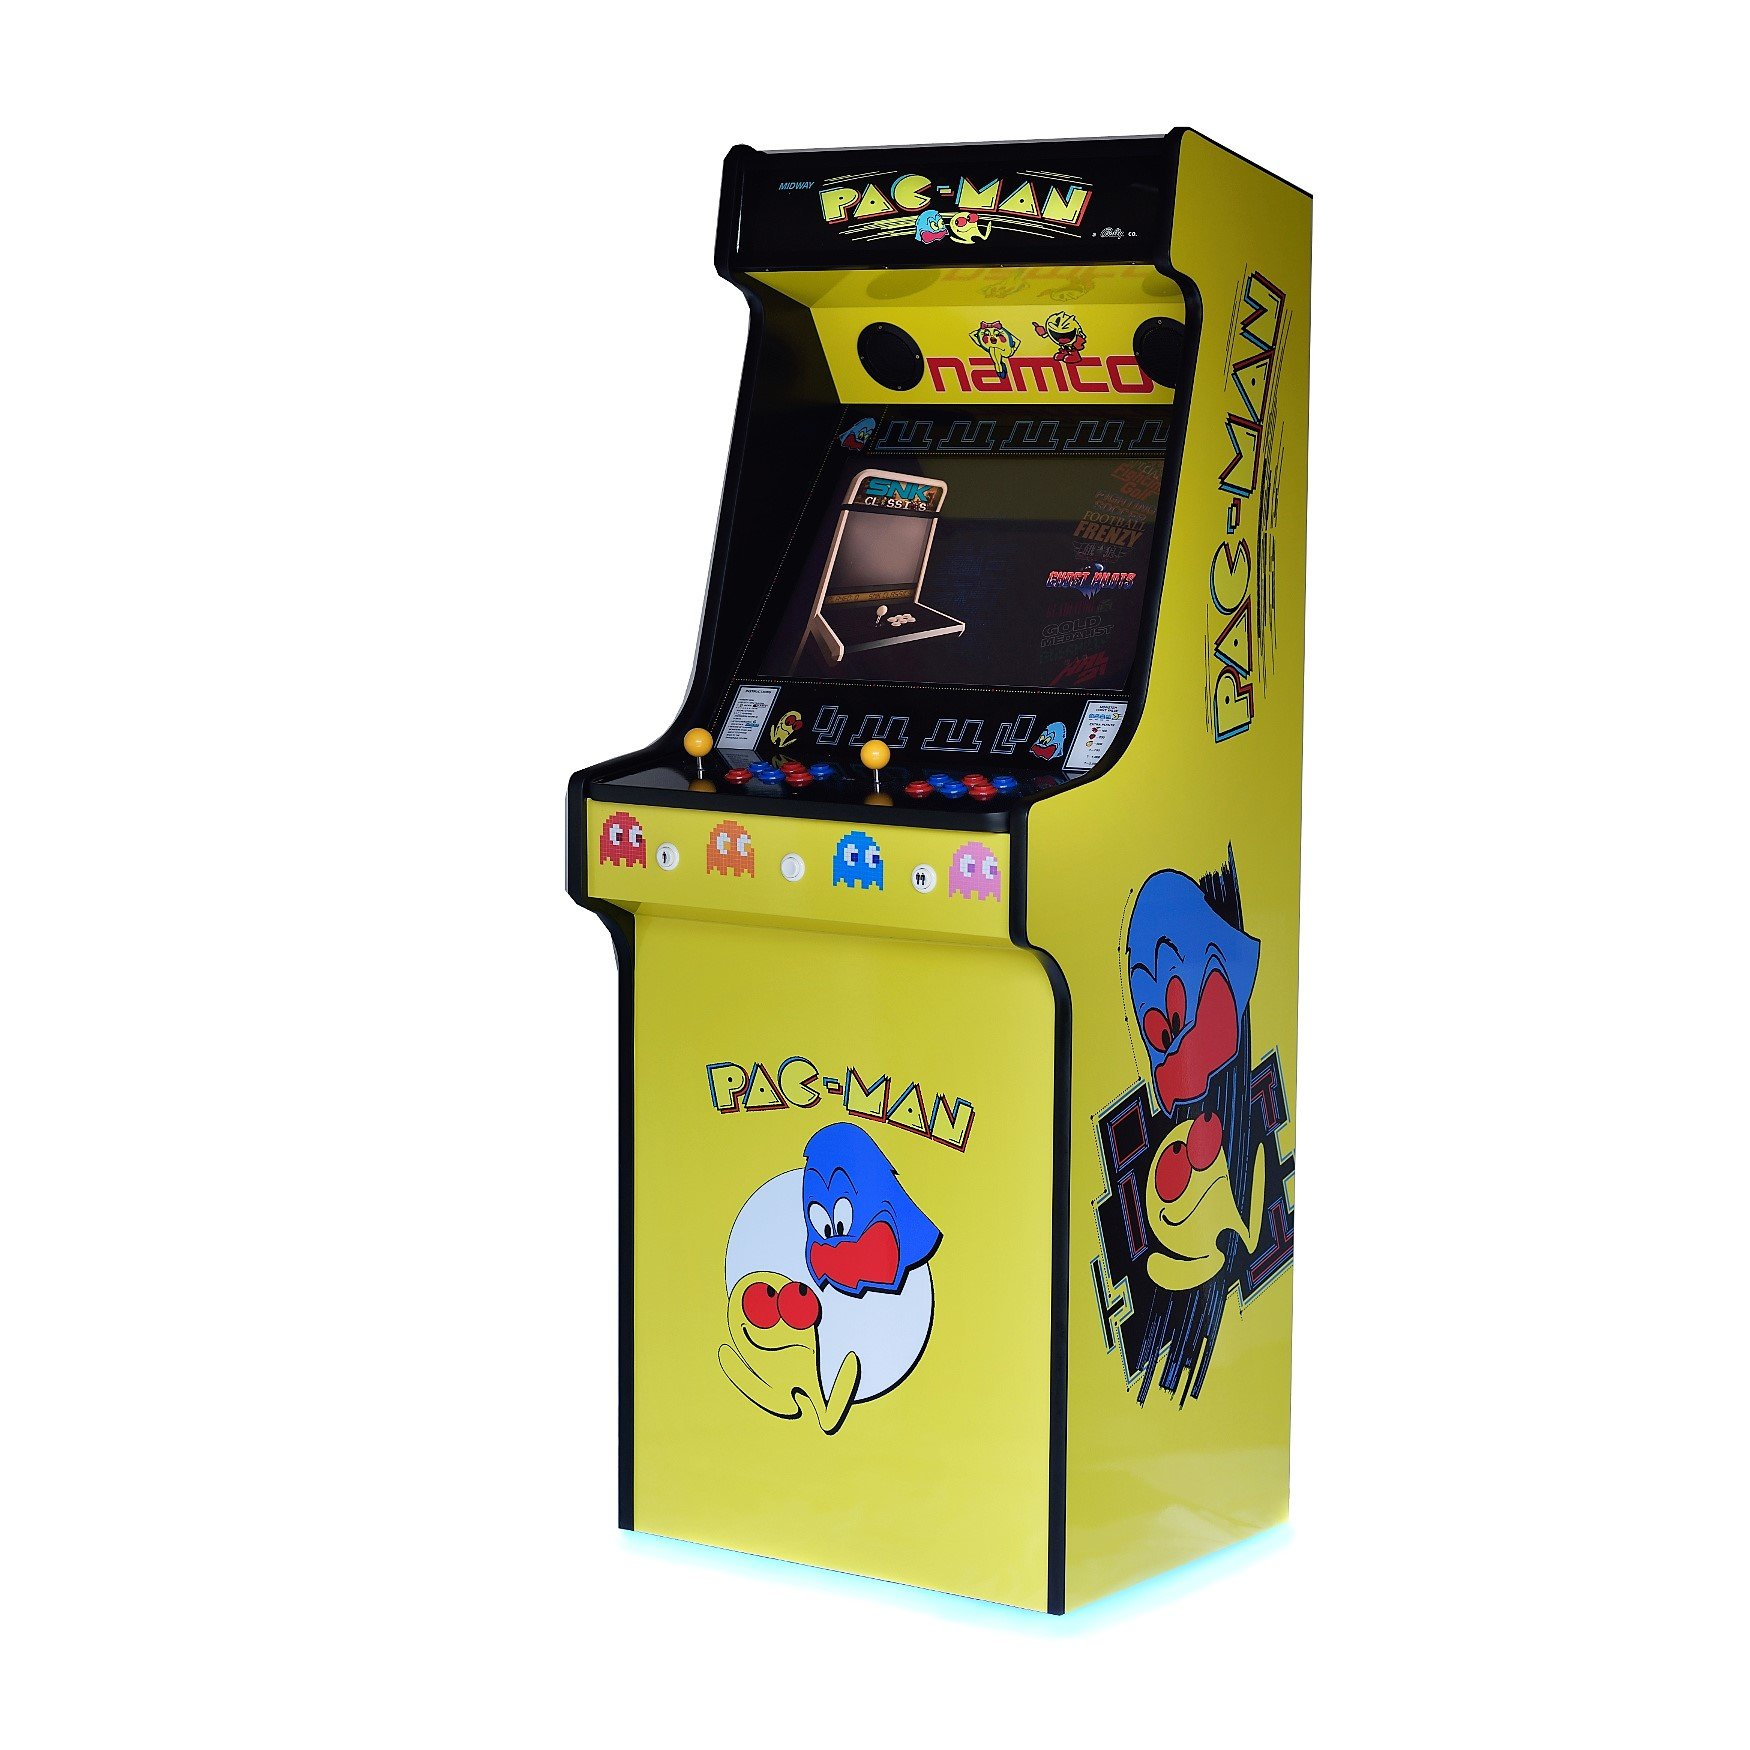 Classic Upright Arcade Machine - Original PacMan Yellow Theme - Right